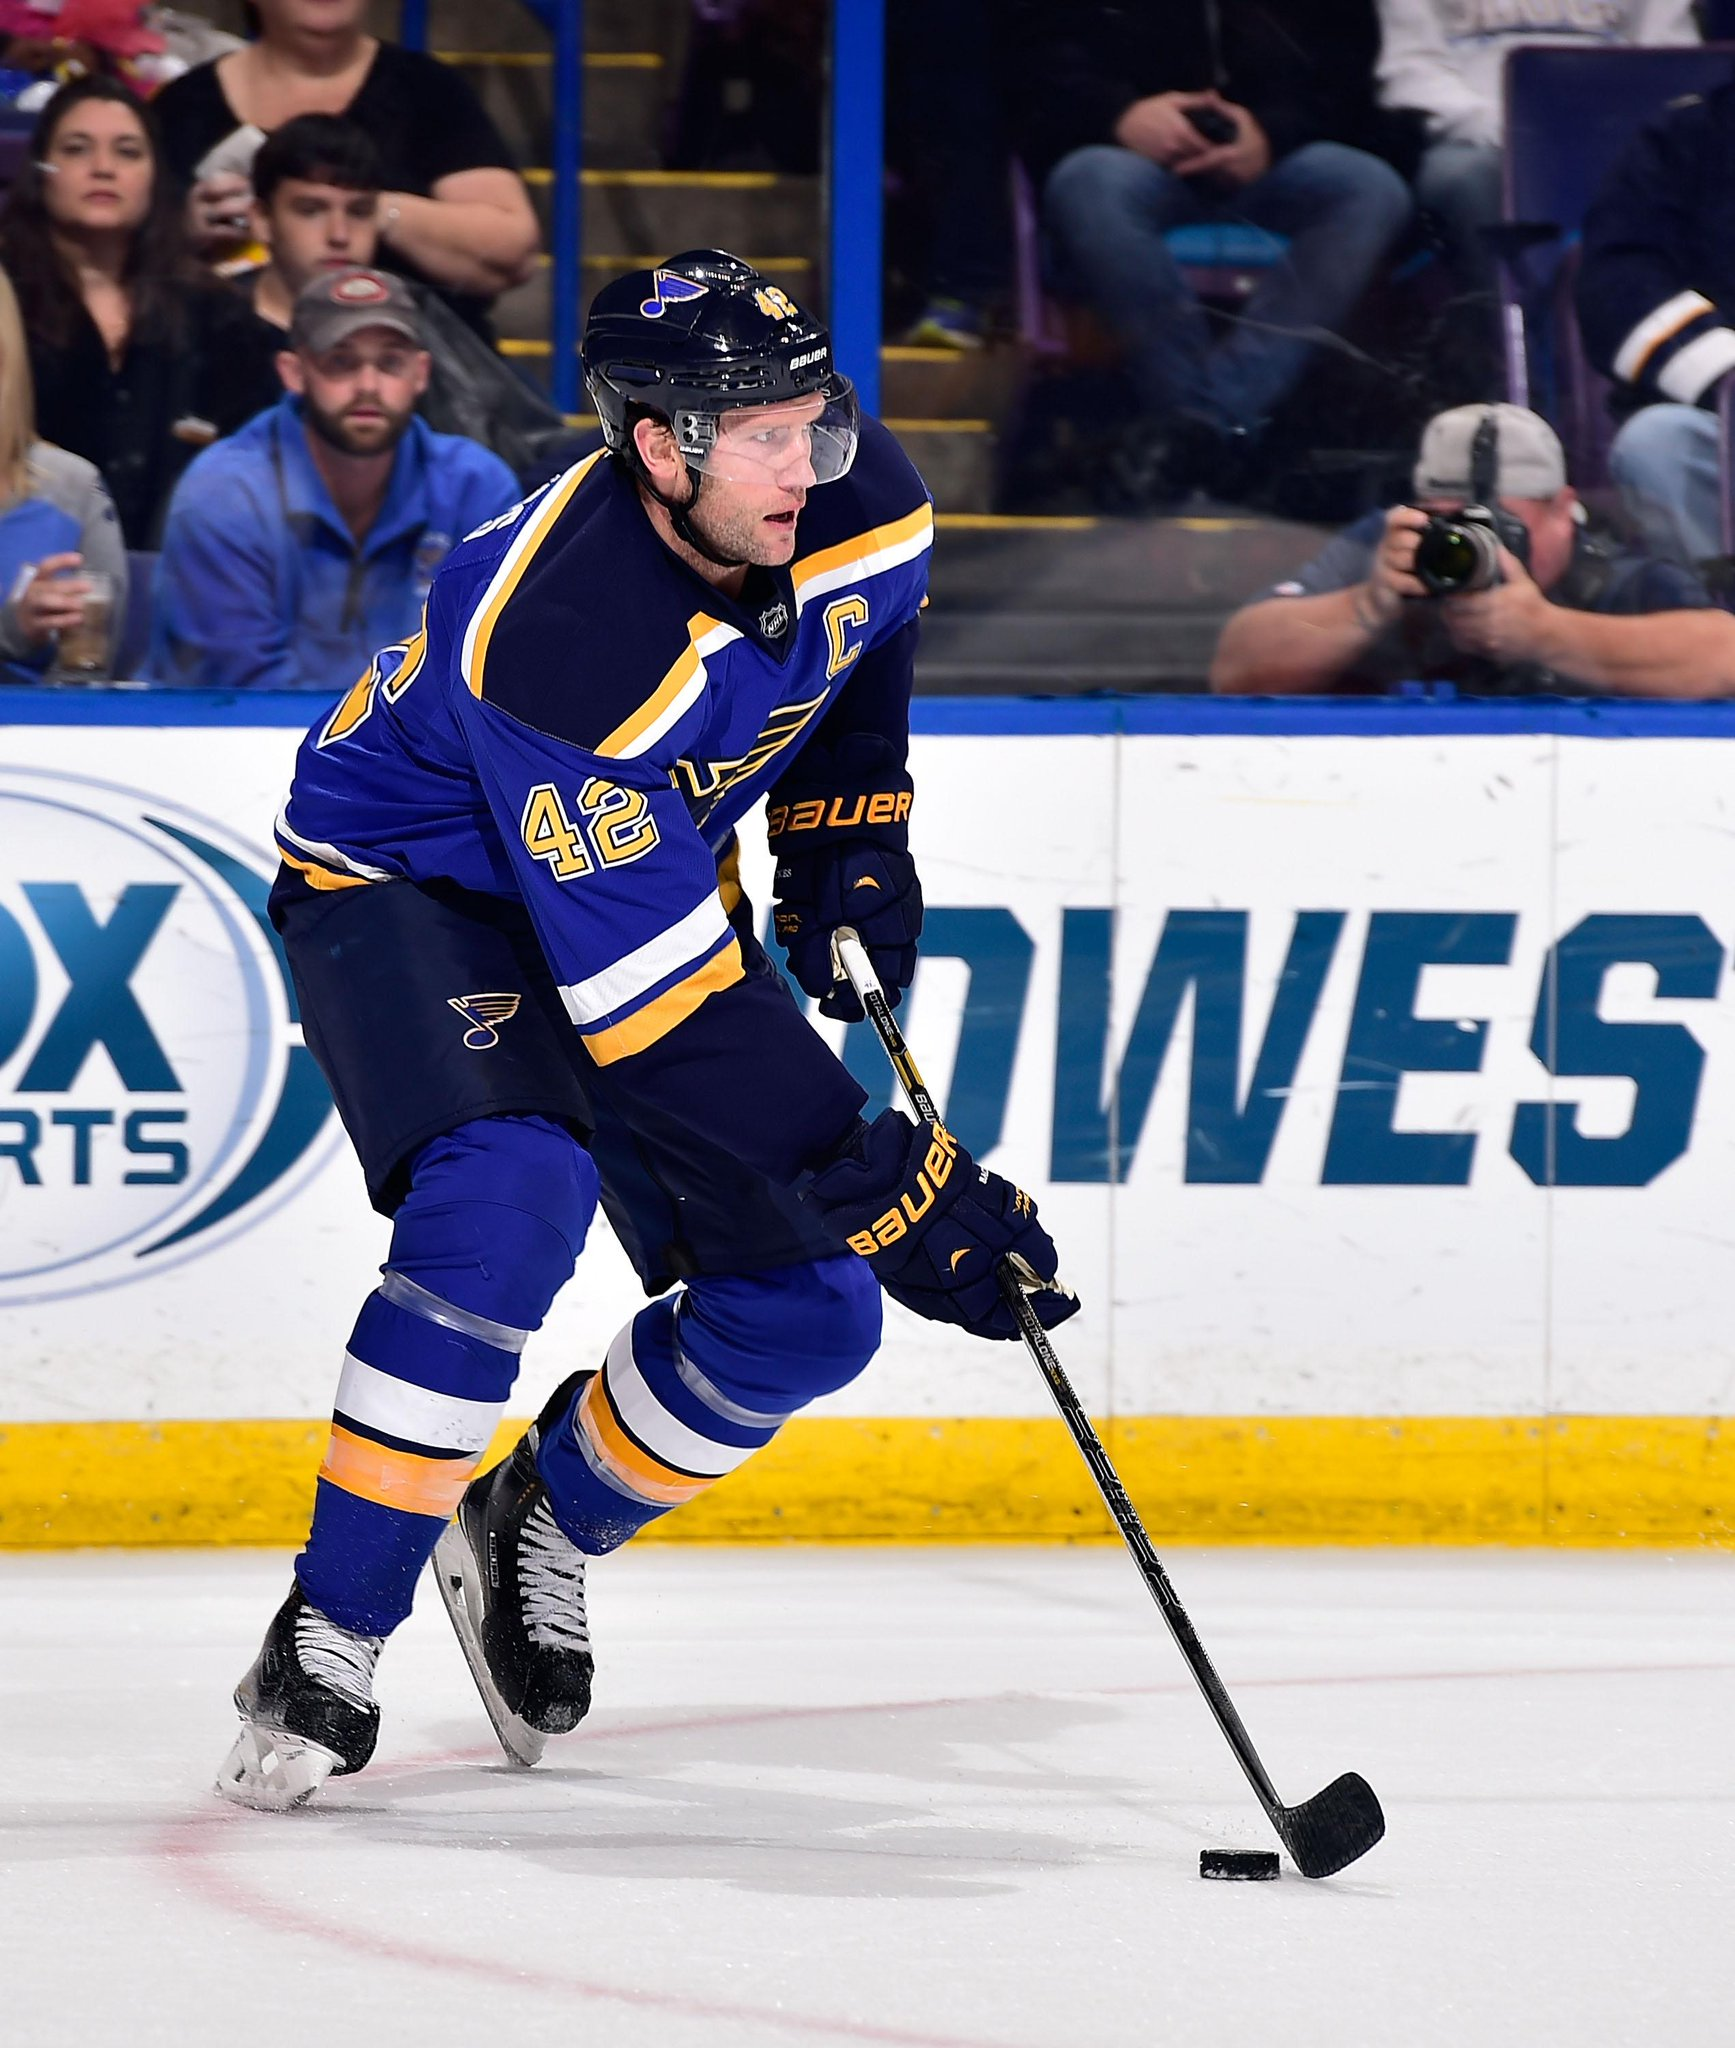 A PPG from Backes and 3 assists from Stastny as the @STLBLues lead the @NHLFlames 4-0. #STLvsCGY http://t.co/kq5YIamEGZ